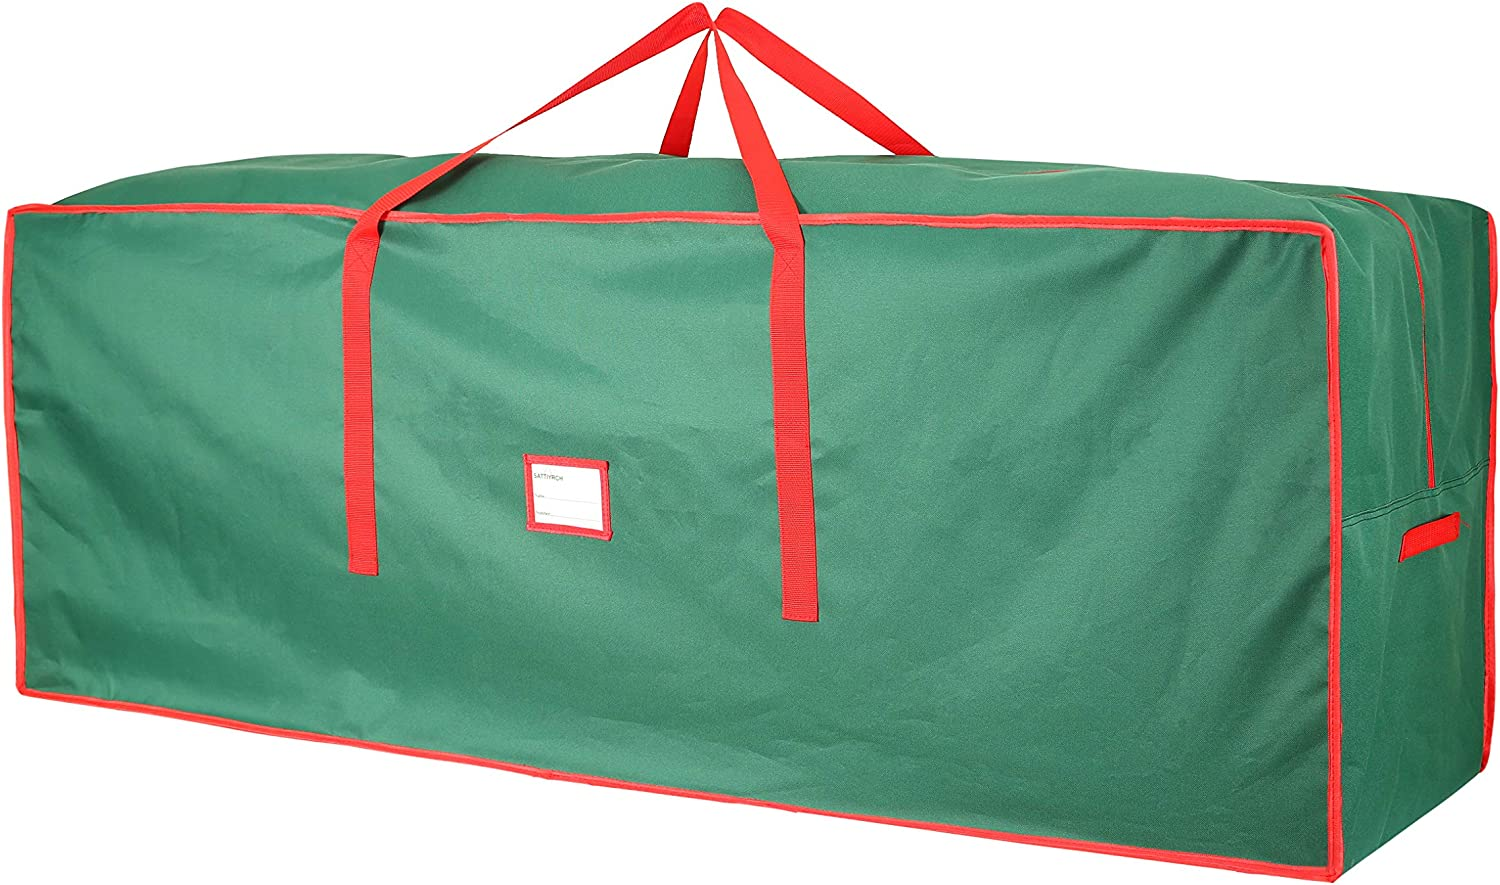 Christmas Tree Storage Bag,Heavy Duty 600D Oxford Xmas Holiday Extra Large Container up to 9